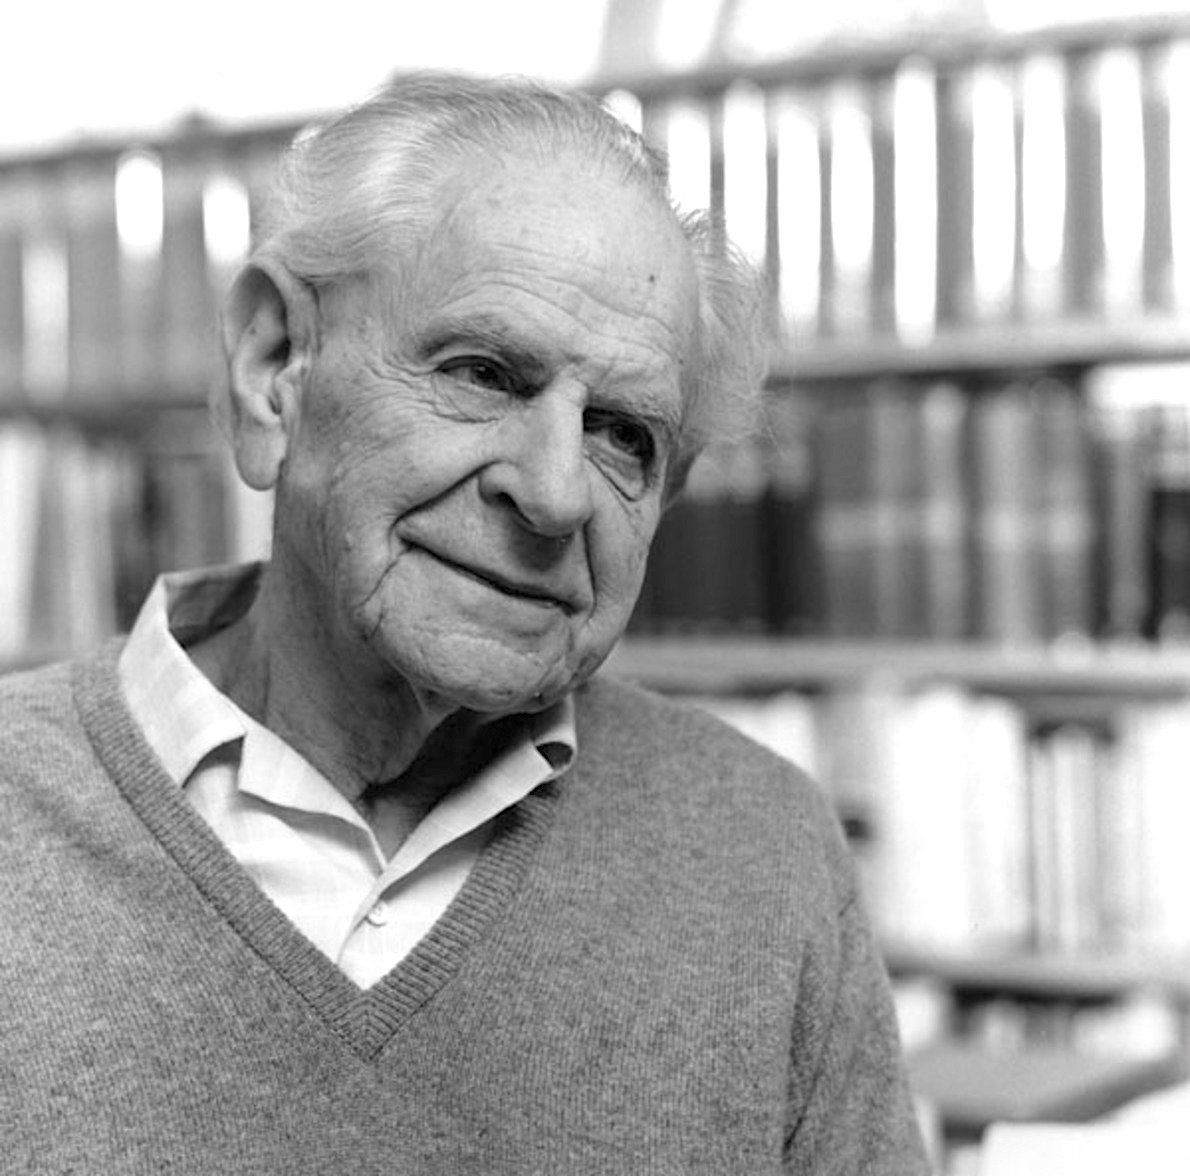 karl poppers first thesis Science: conjectures and refutations sir karl popper overview popper's speech, given in 1953, addresses two major problems in the philosophy of science that were of.